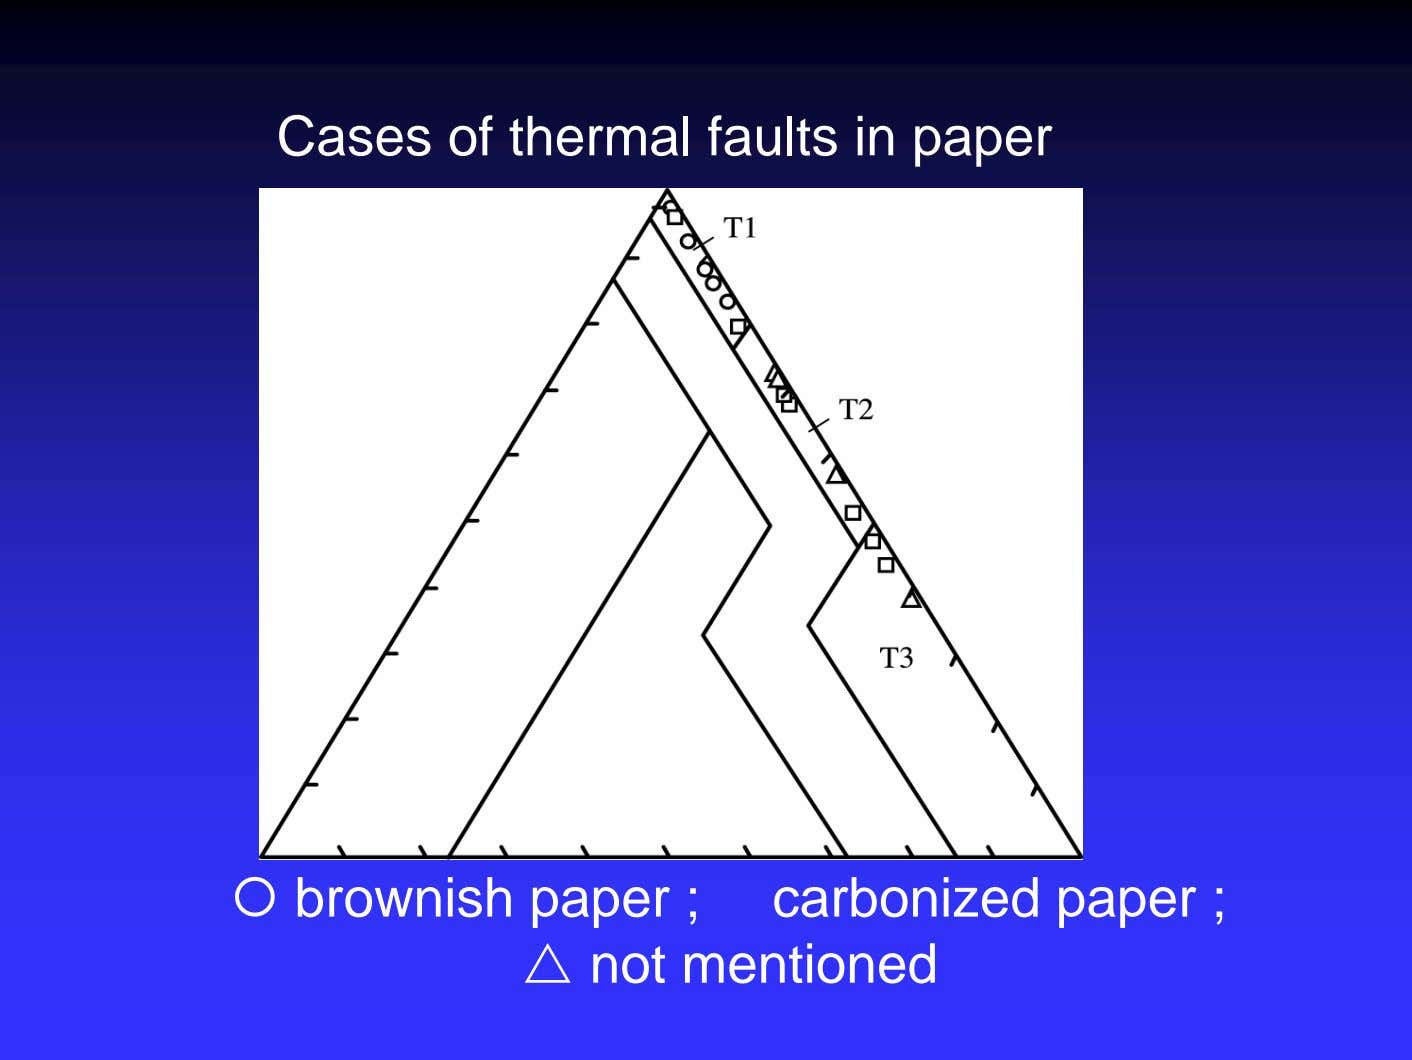 Cases of thermal faults in paper brownish paper ; carbonized paper ; not mentioned